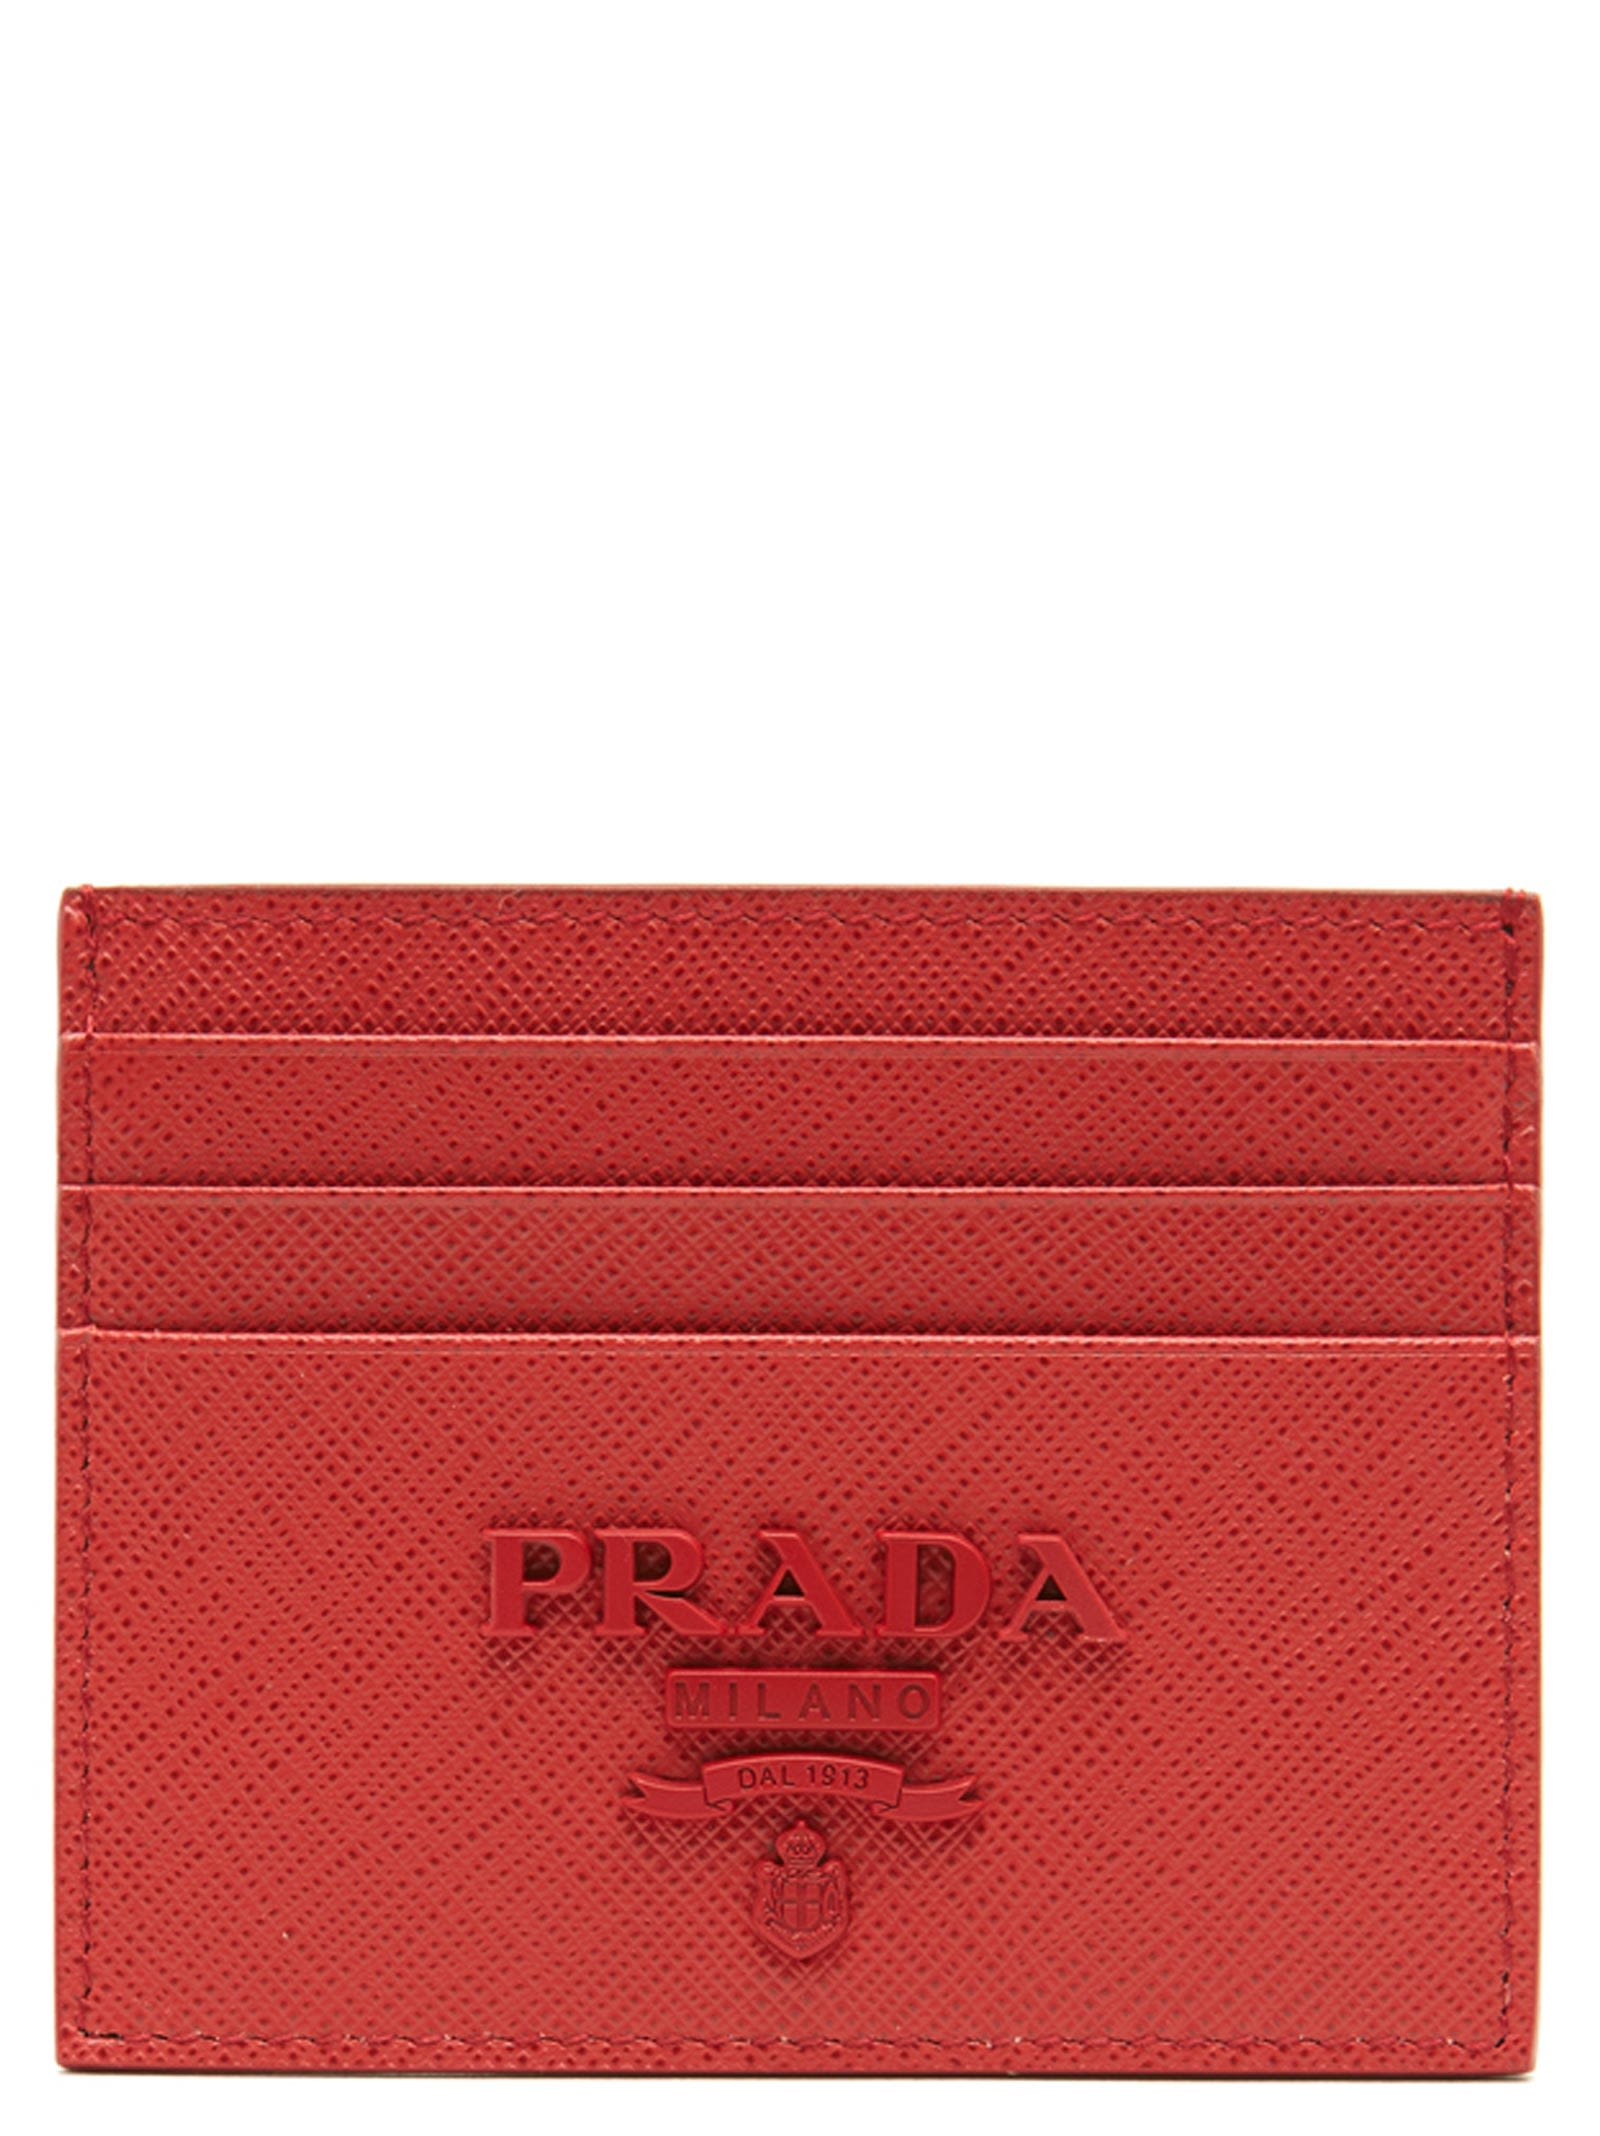 f20a942fe312 where to buy prada card holder red ced13 6ae9e